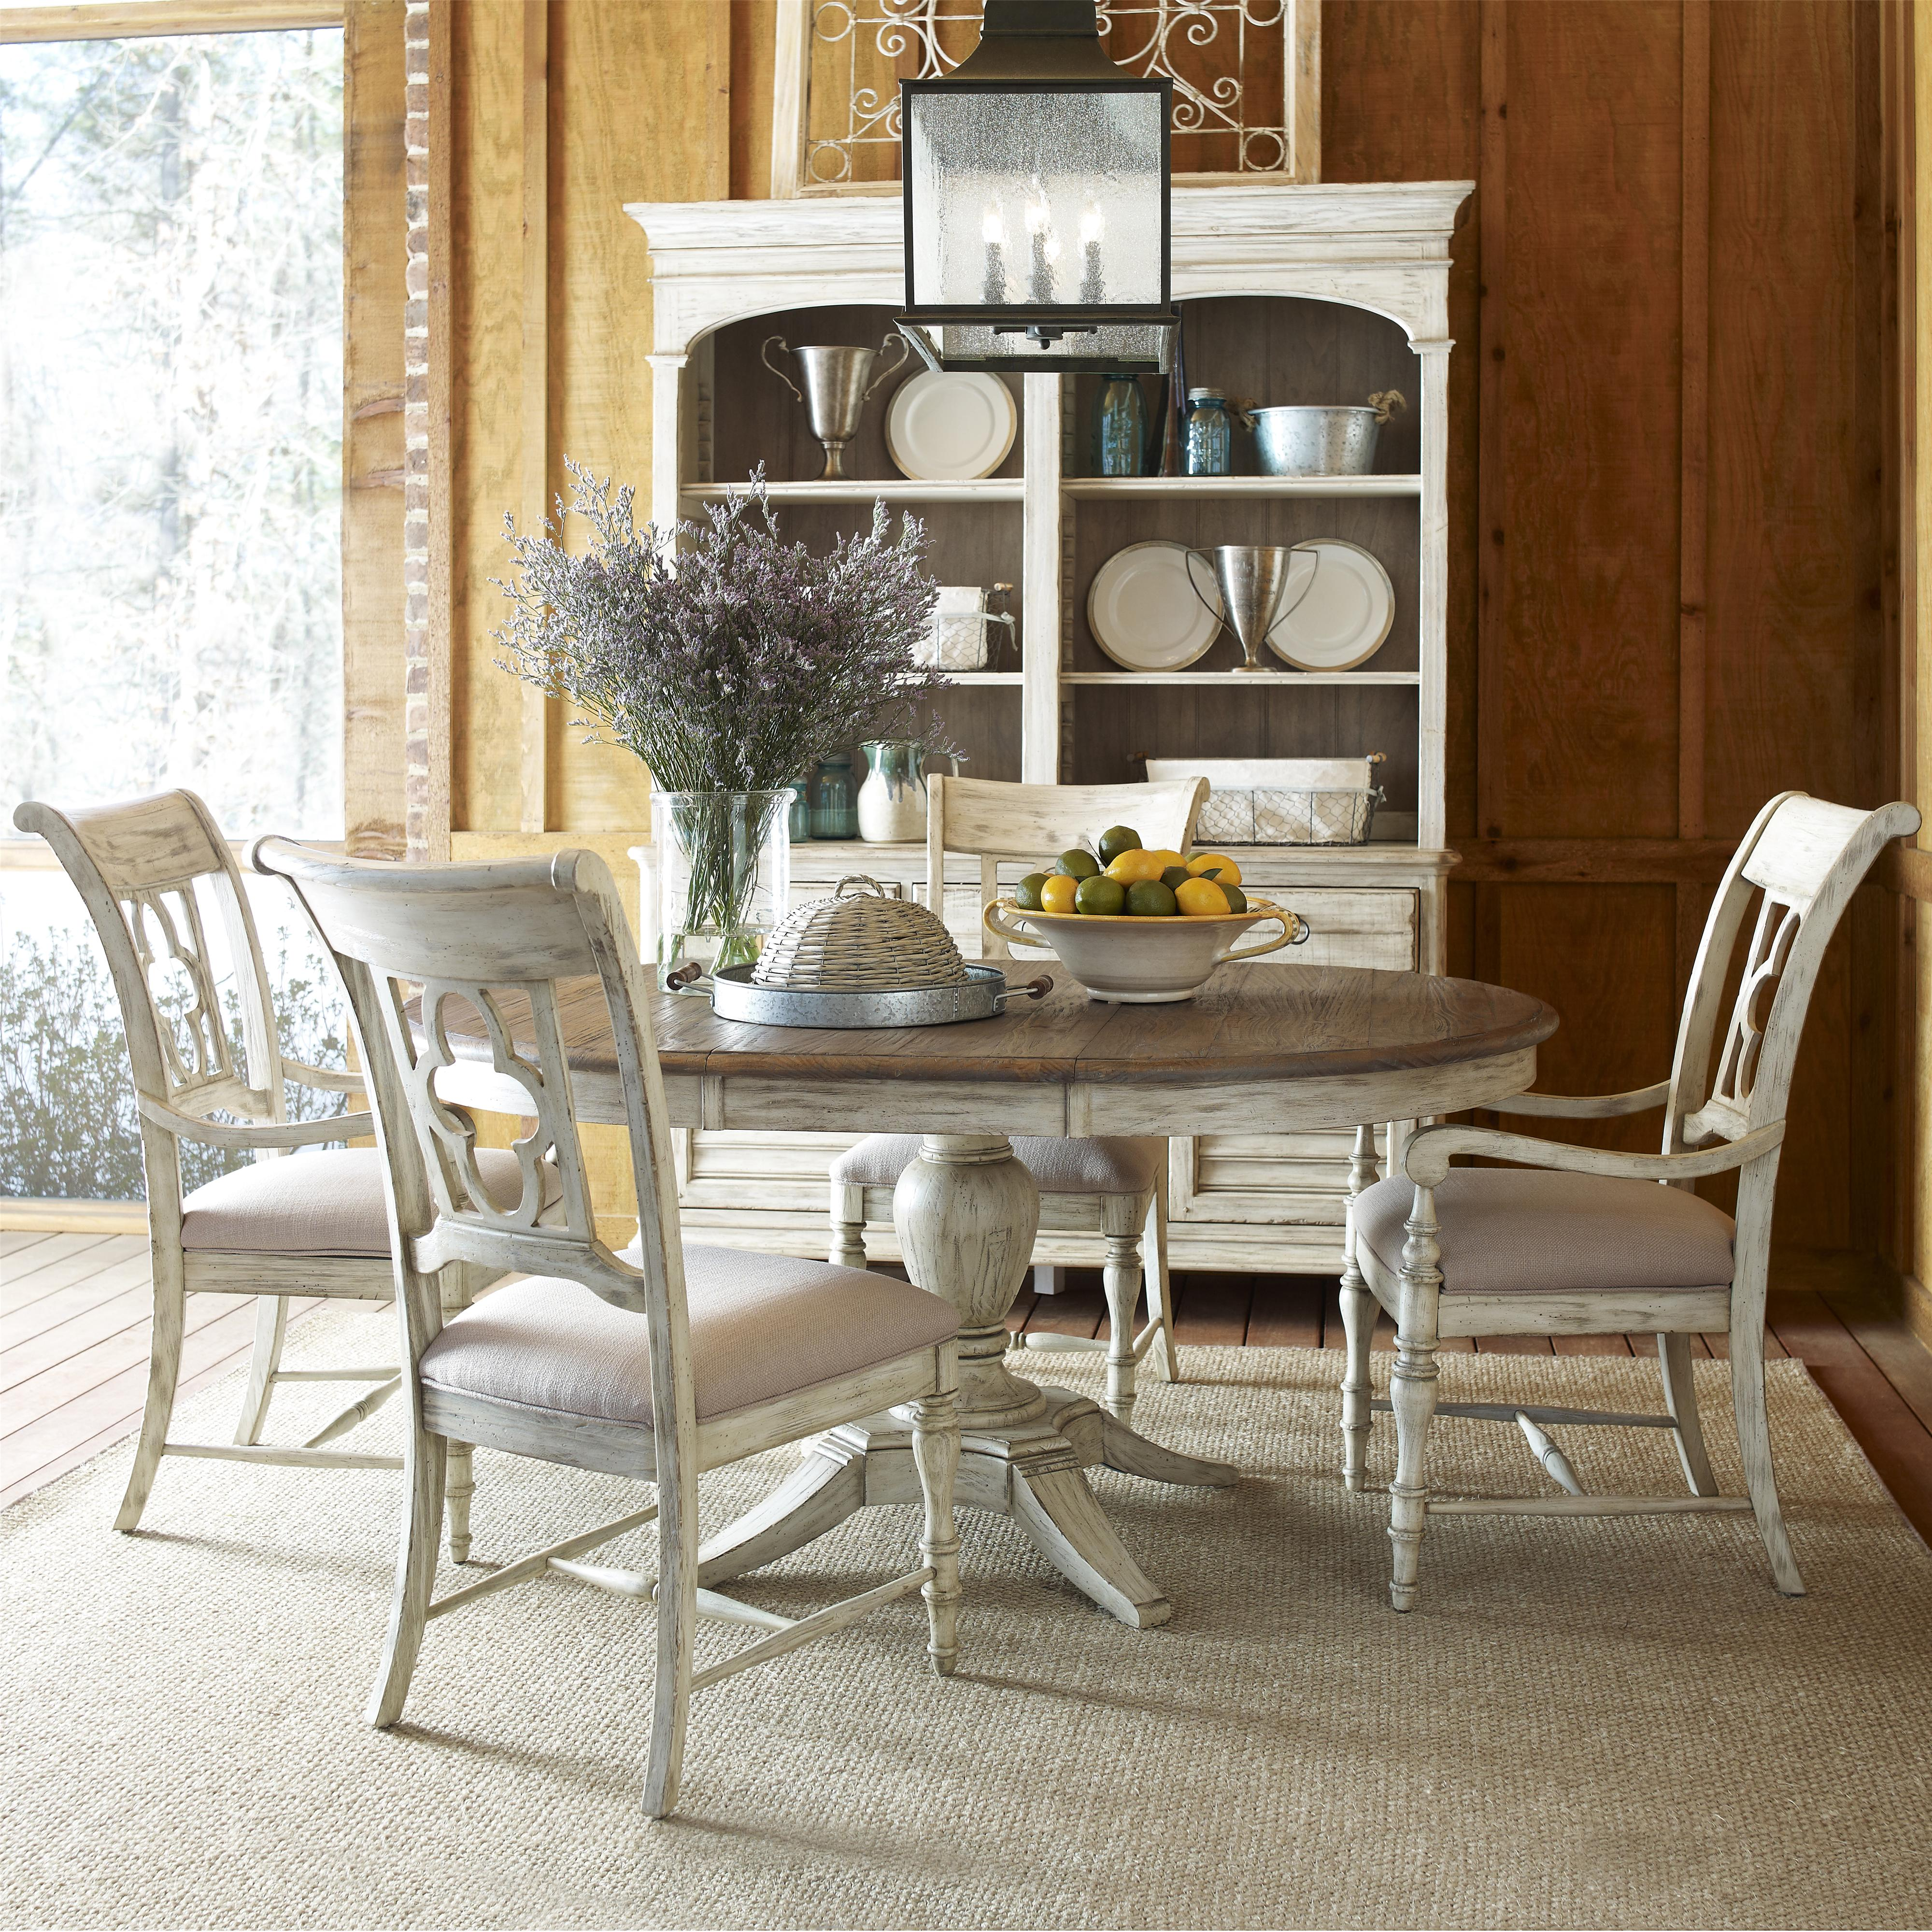 Weatherford 5 Piece Dining Set by Kincaid Furniture at Jacksonville Furniture Mart